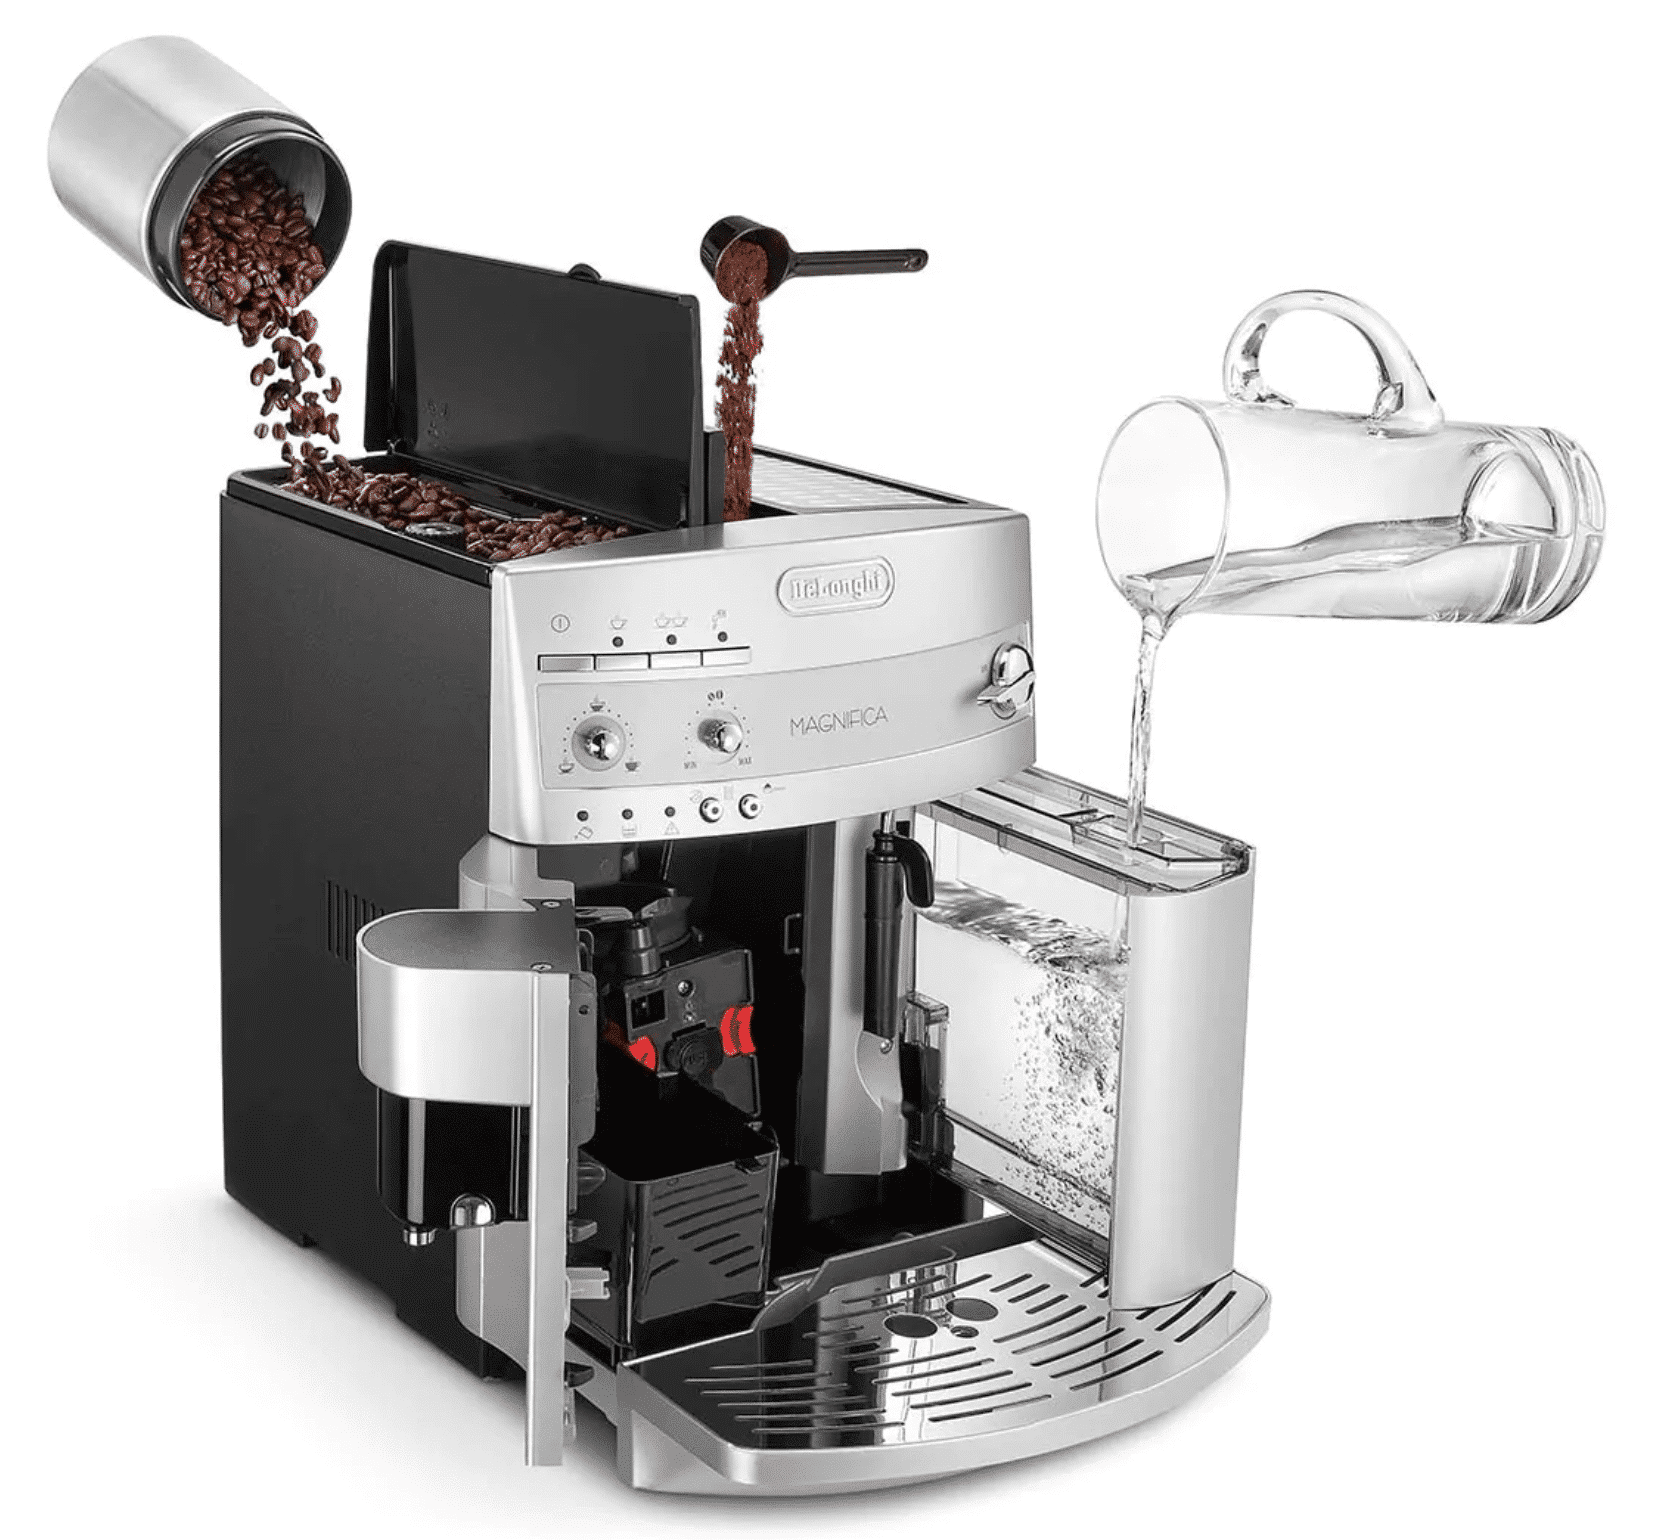 Best Home Espresso Machine For Beginners 2017